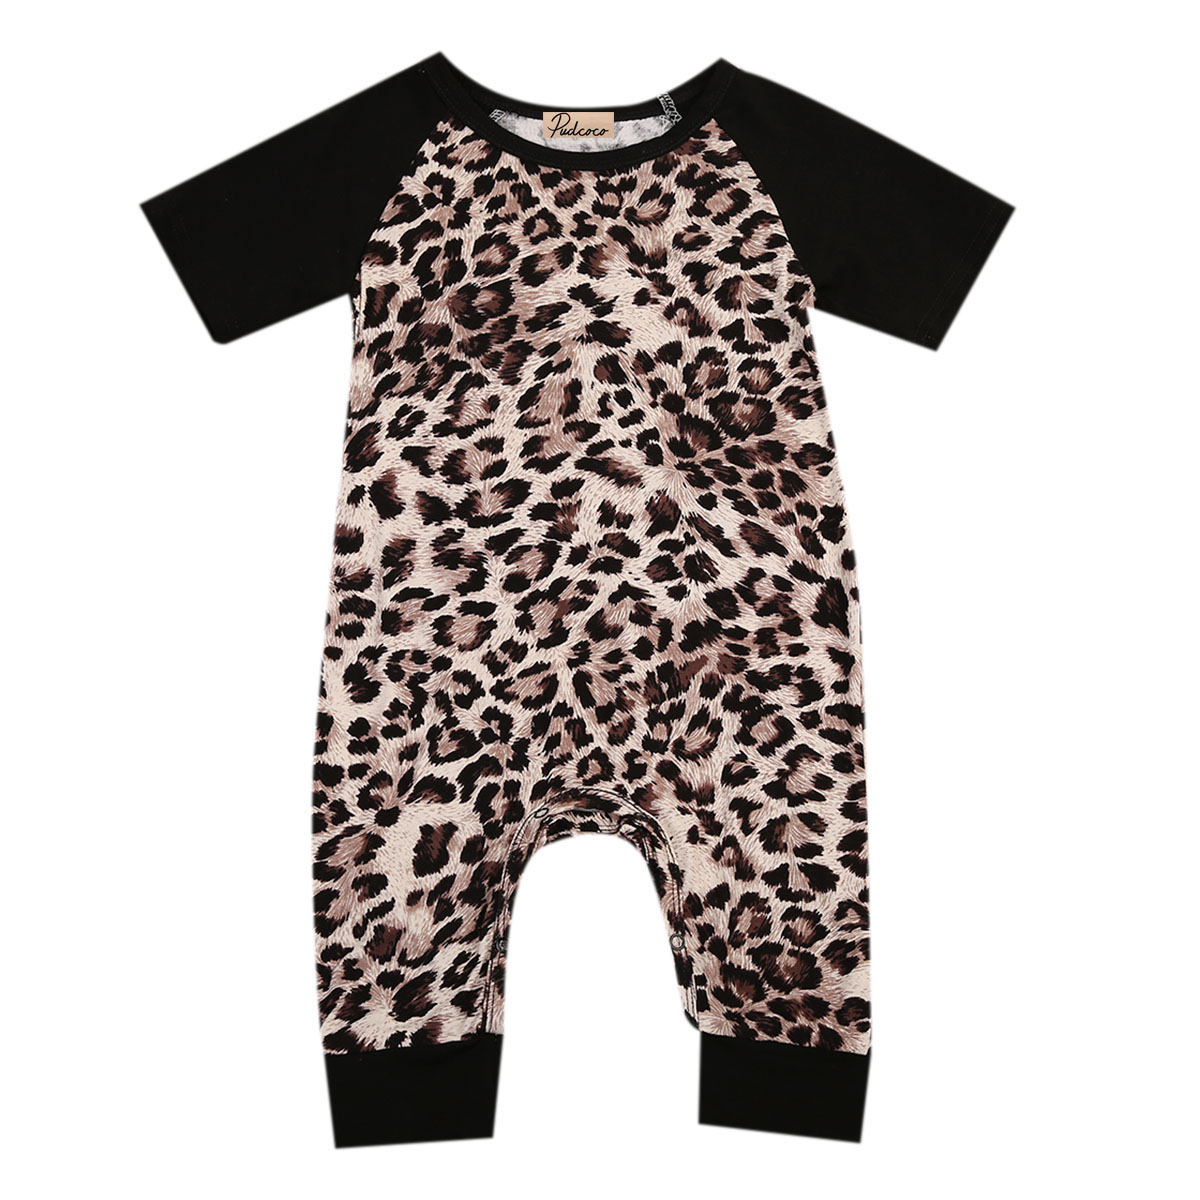 Black Infant 0-24M Baby Boys Girls Short Sleeve New Romper Outfits Sunsuit Kids One-Piec ...